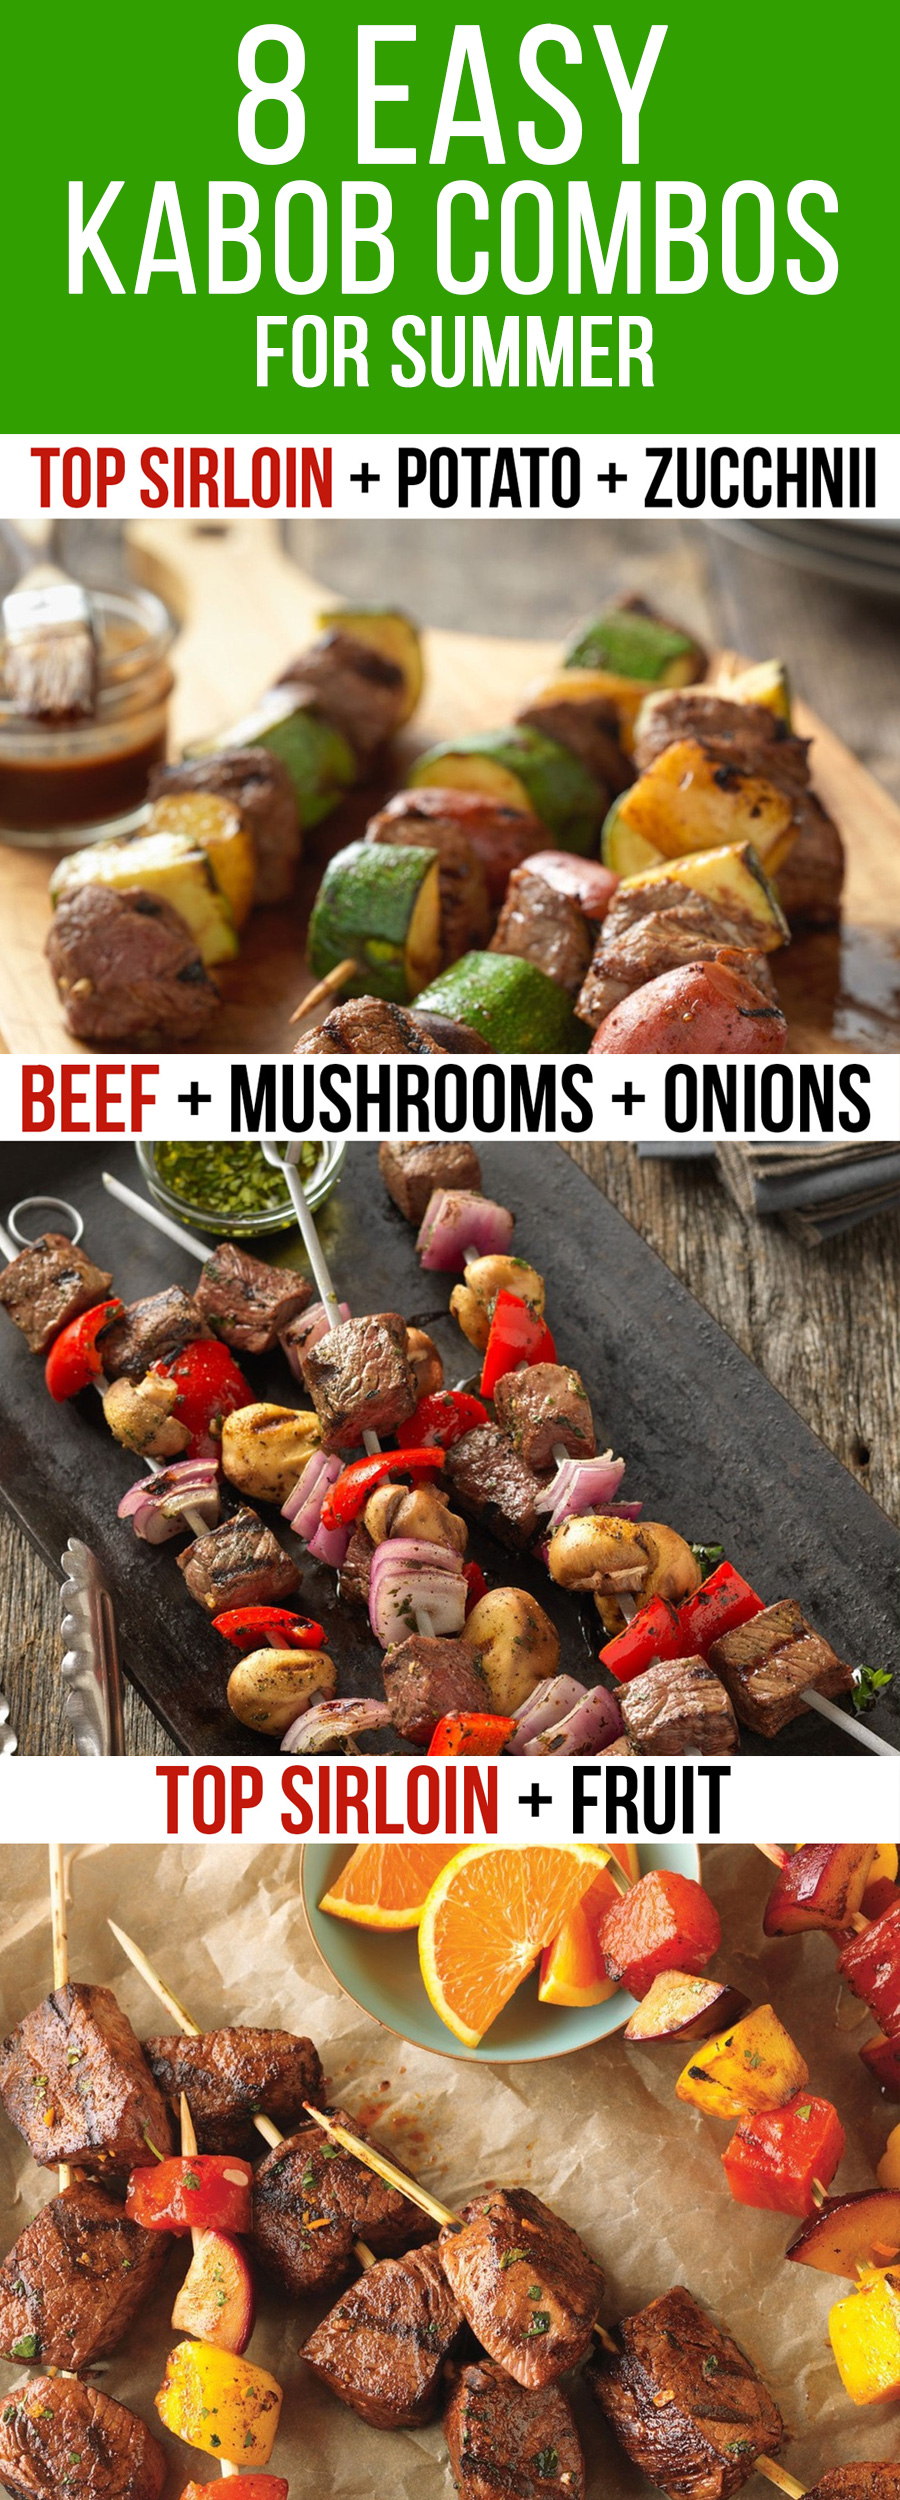 Easy-Kabob-Combos-for-SUmmer